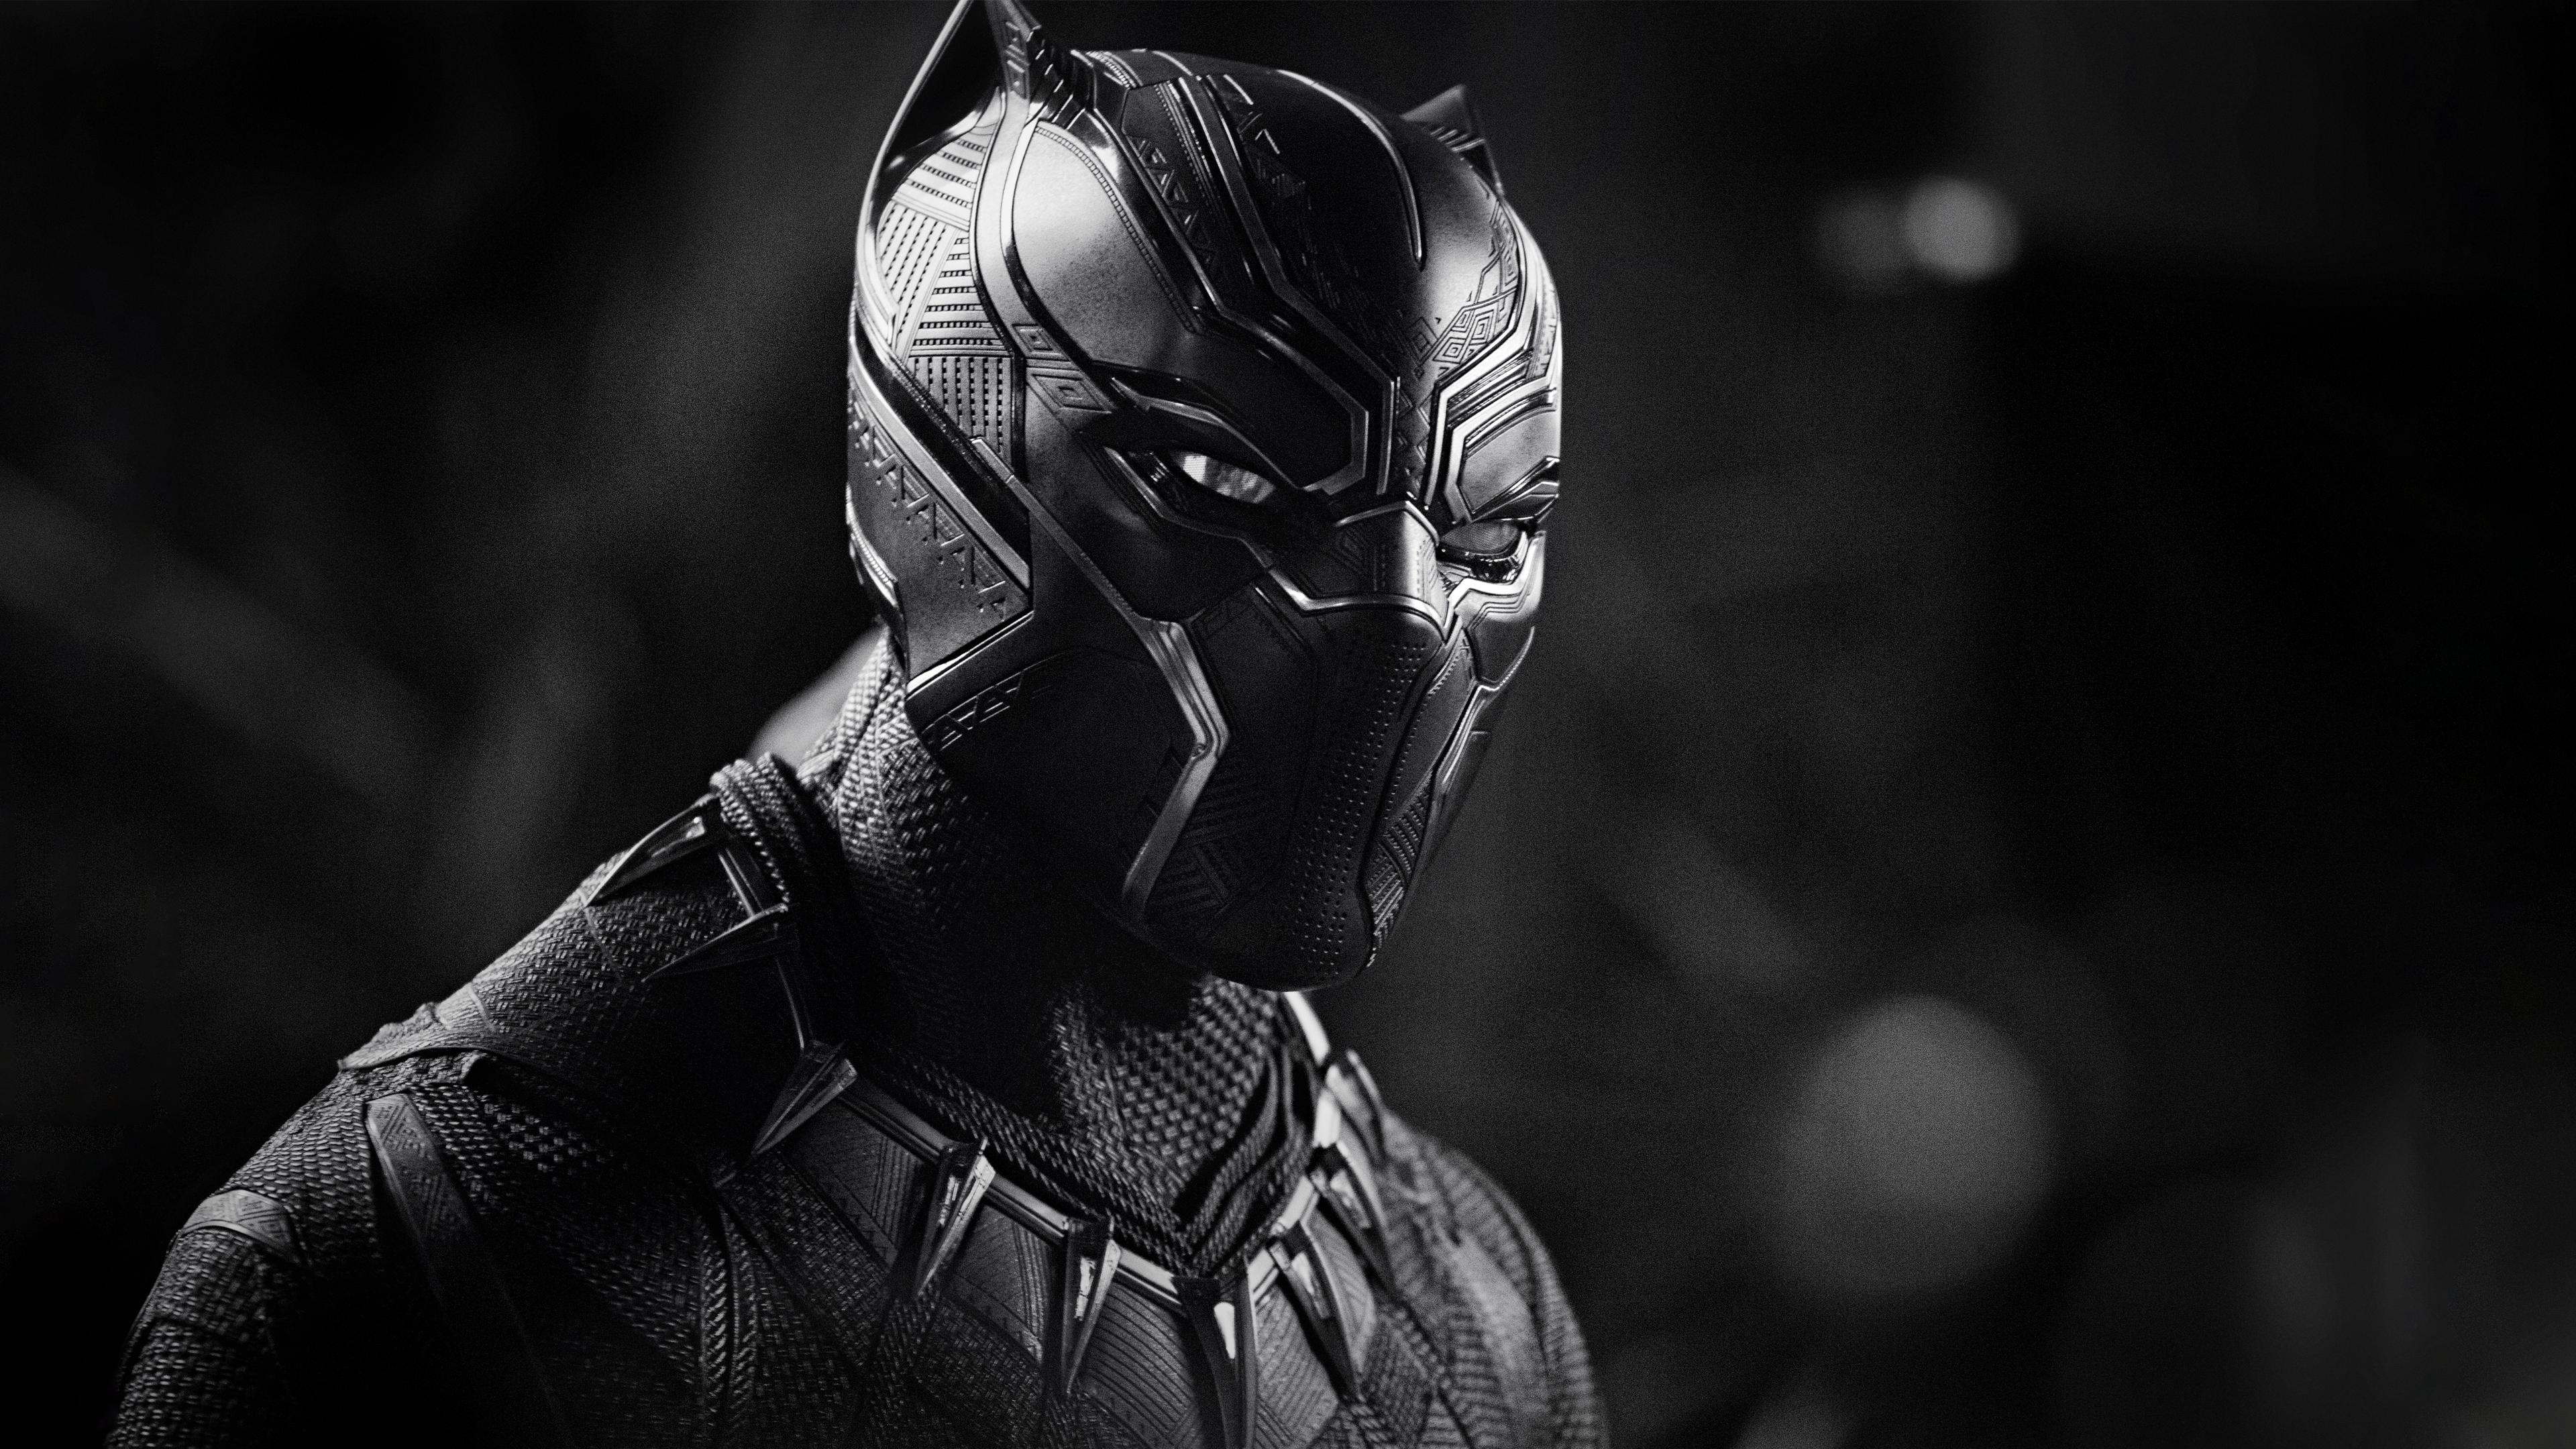 black panther monochrome 4k hd movies 4k wallpapers images